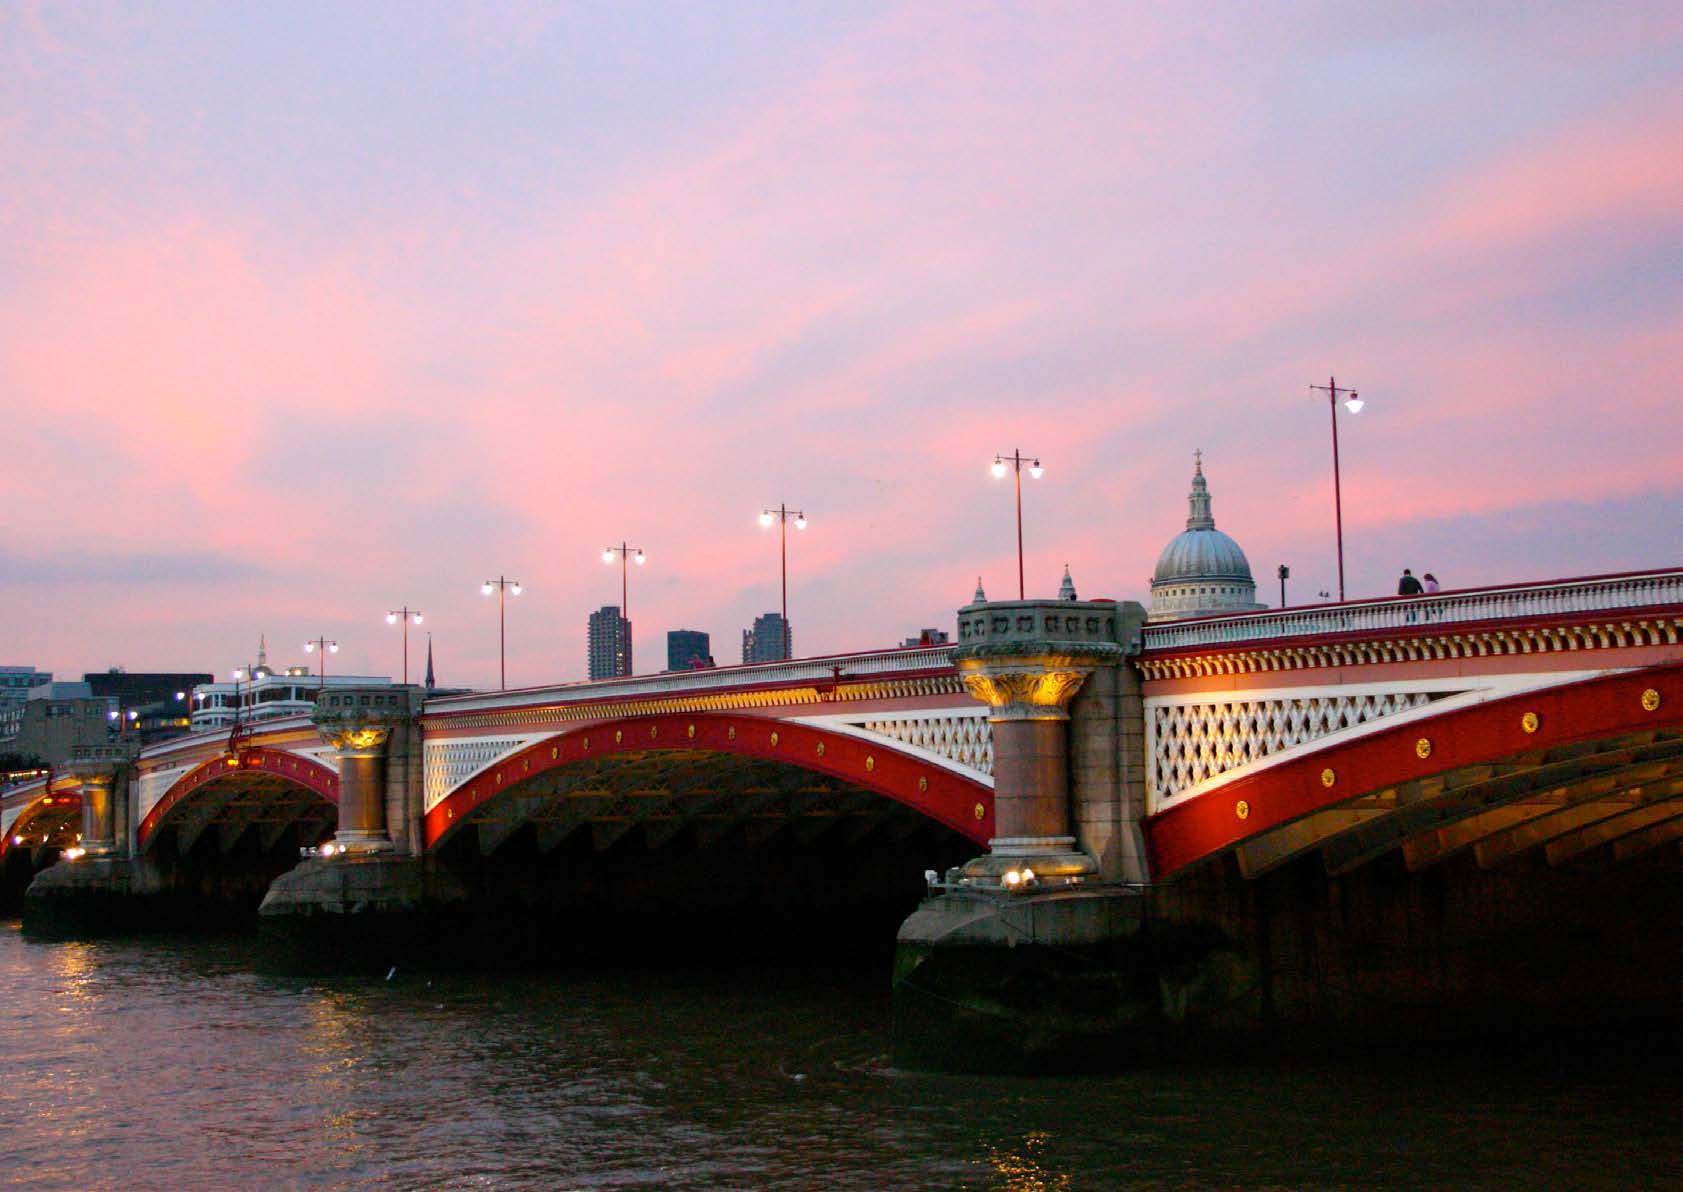 Picture of a London bridge